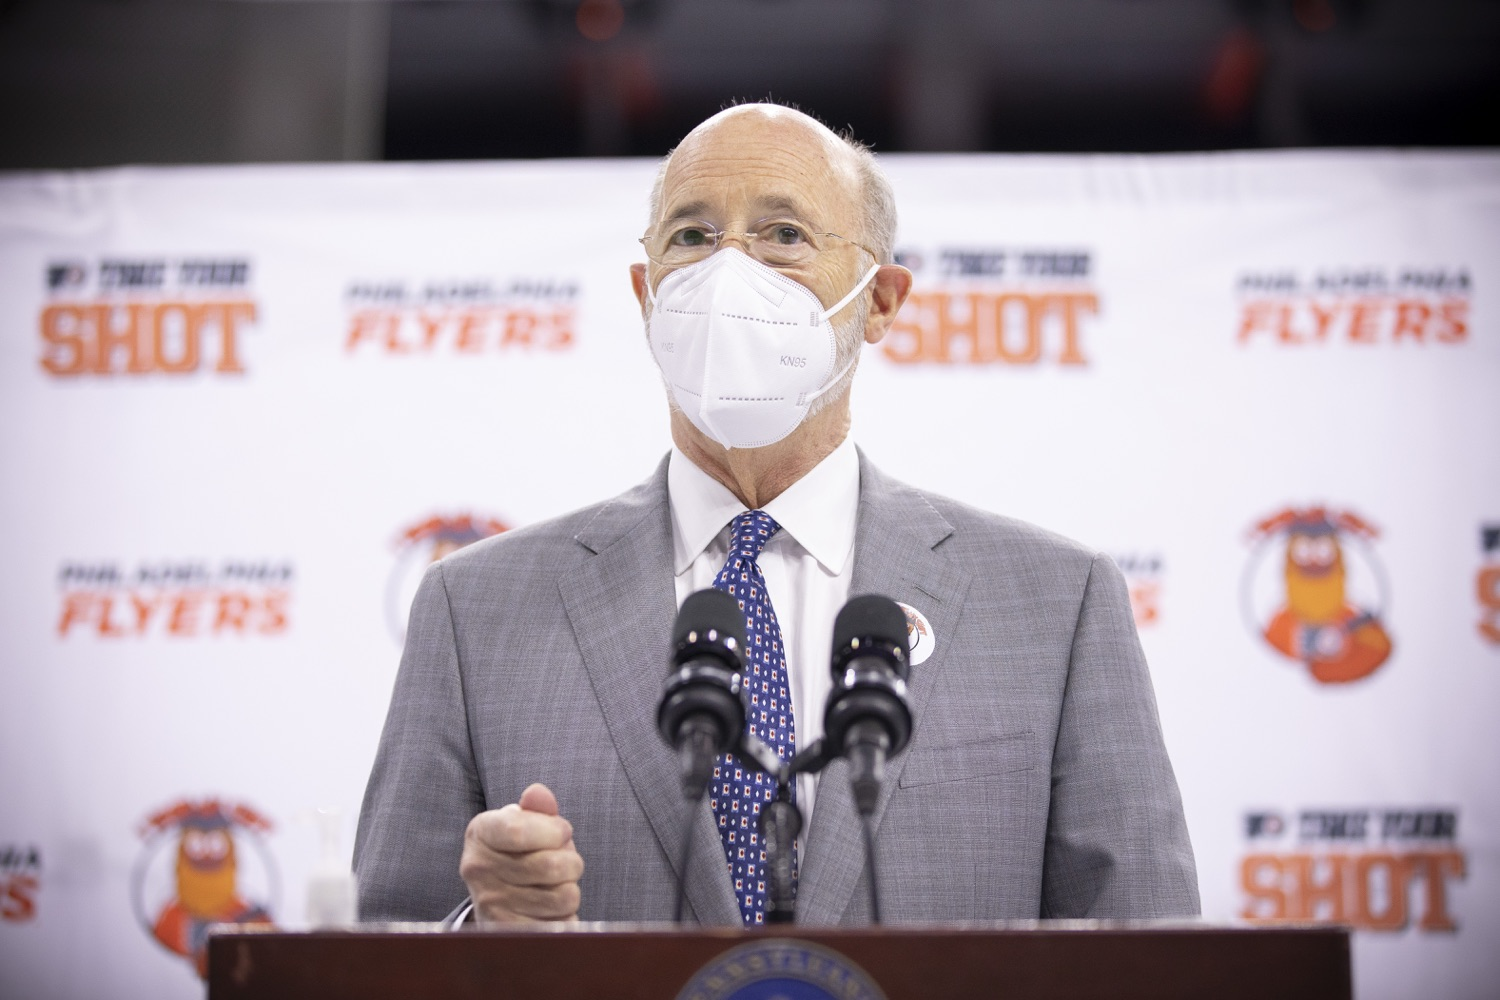 "<a href=""https://filesource.wostreaming.net/commonwealthofpa/photo/18727_gov_vaccines_dz_014.jpg"" target=""_blank"">⇣ Download Photo<br></a>Pennsylvania Governor Tom Wolf speaking with the press.   Governor Tom Wolf today visited the Philadelphia Flyers organization at the Wells Fargo Center in Philadelphia to discuss COVID-19 vaccine efforts in Pennsylvania. The Flyers recently launched a comprehensive COVID-19 vaccine campaign, Take Your Shot, encouraging Pennsylvanians to get vaccinated.  Philadelphia, PA  MAY 3, 2021"